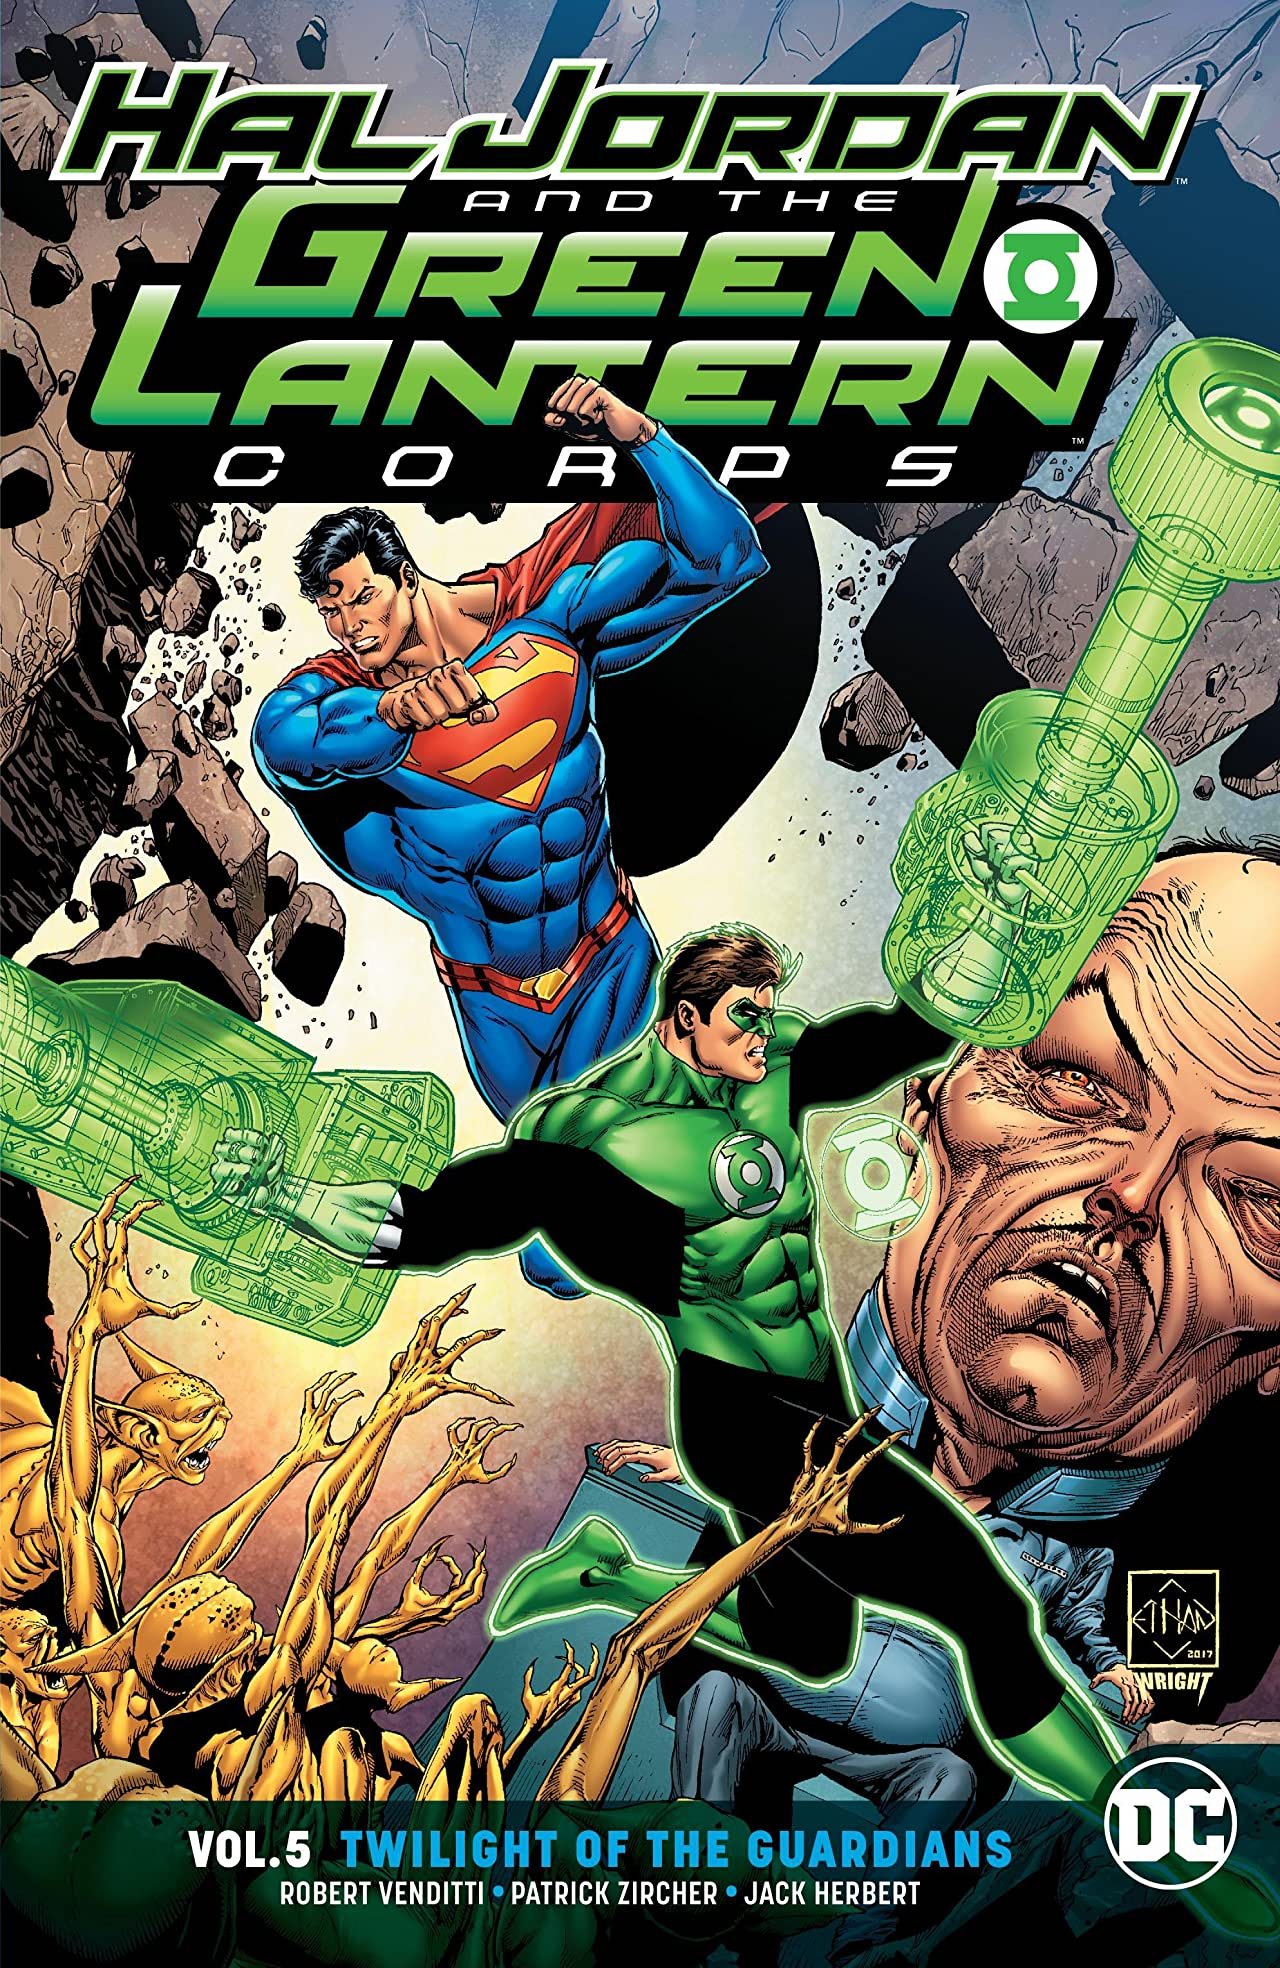 Hal Jordan and the Green Lantern Corps (2016-2018) Vol. 5: Twilight of the Guardians